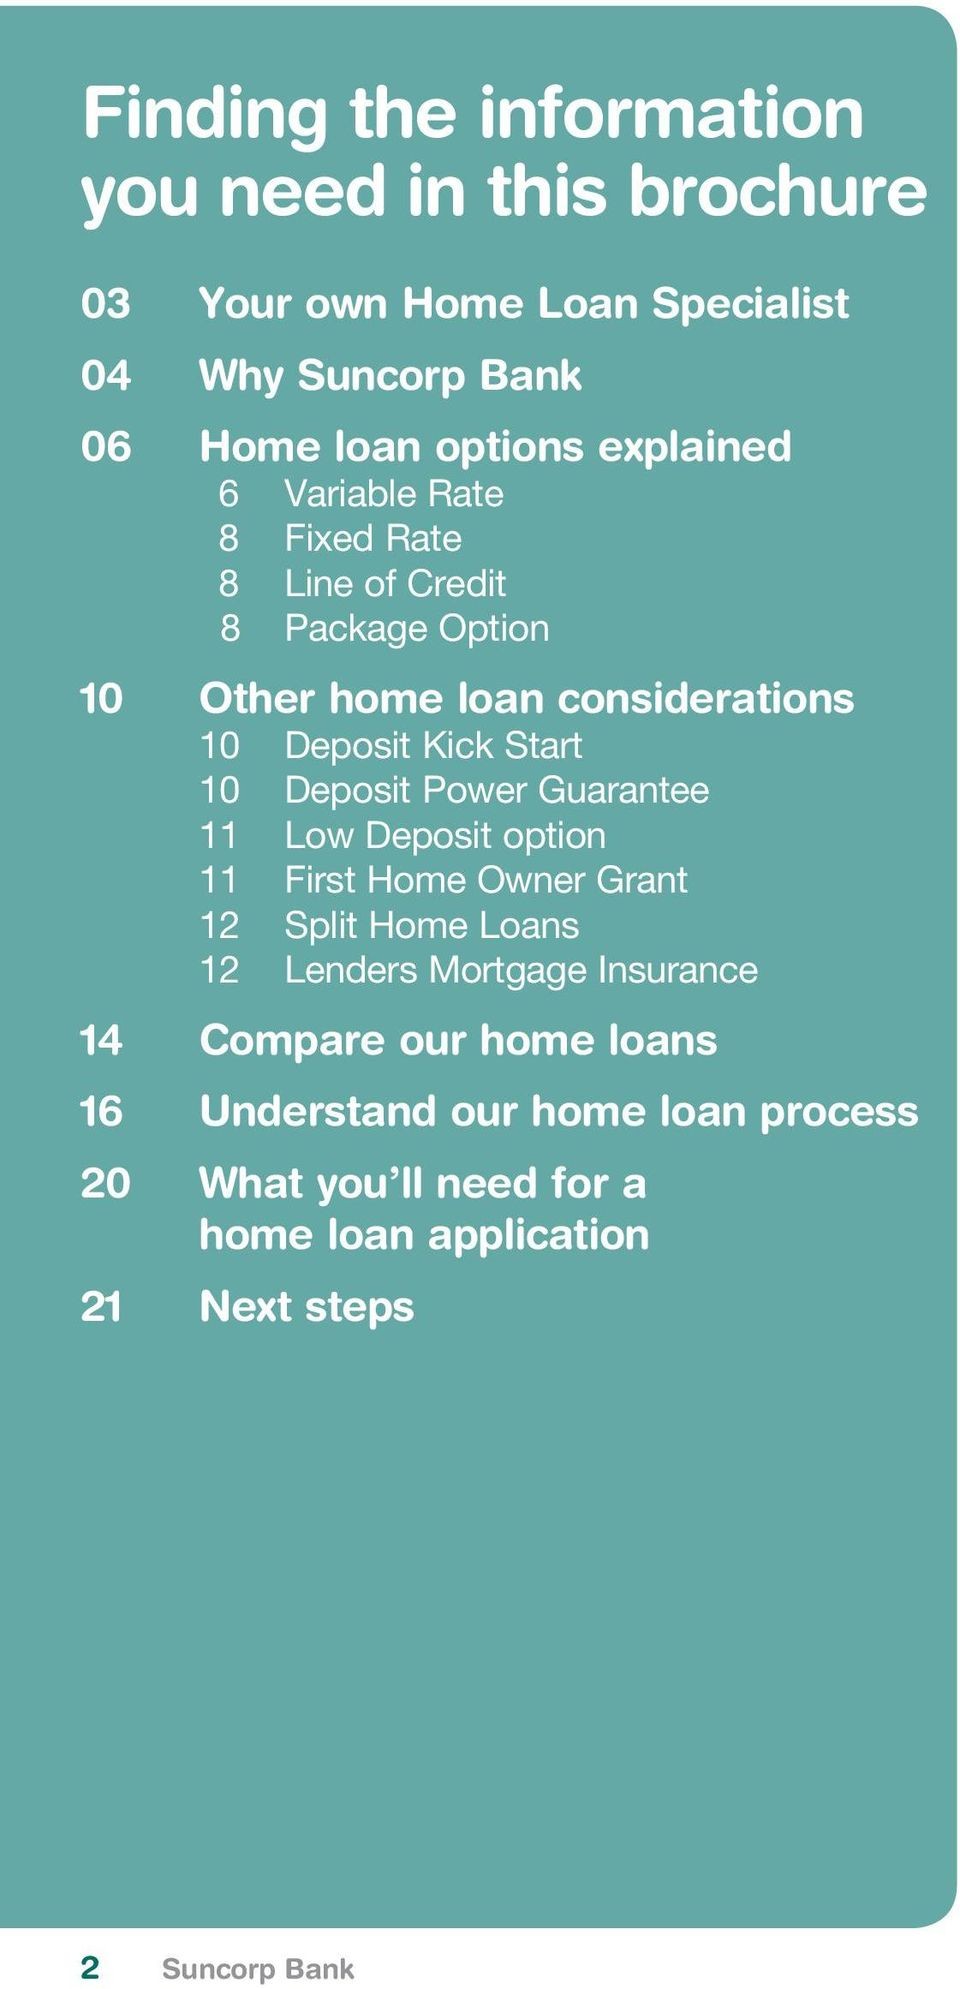 10 Deposit Power Guarantee 11 Low Deposit option 11 First Home Owner Grant 12 Split Home Loans 12 Lenders Mortgage Insurance 14